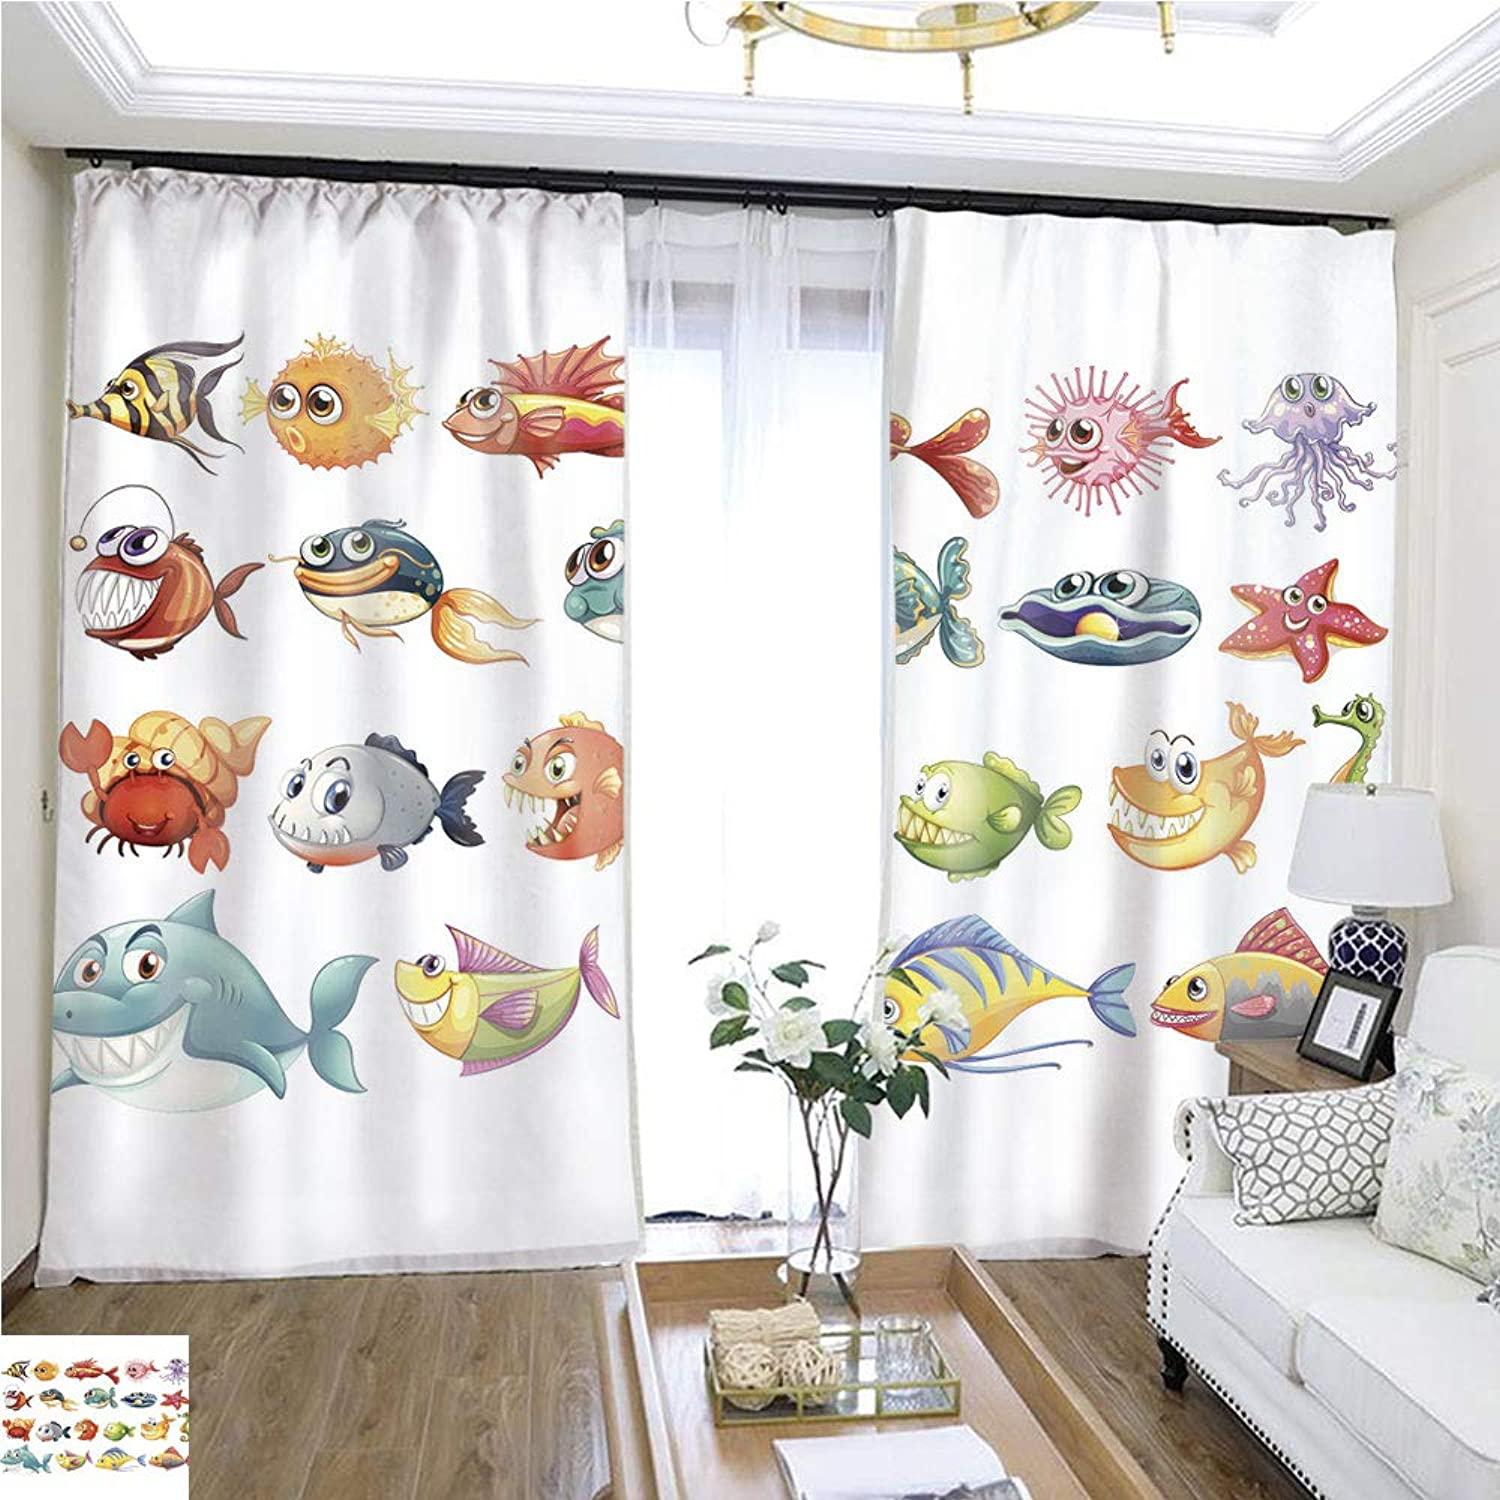 Air Port Screen Fish set1 W108 x L82 Reduce Noise Highprecision Curtains for bedrooms Living Rooms Kitchens etc.